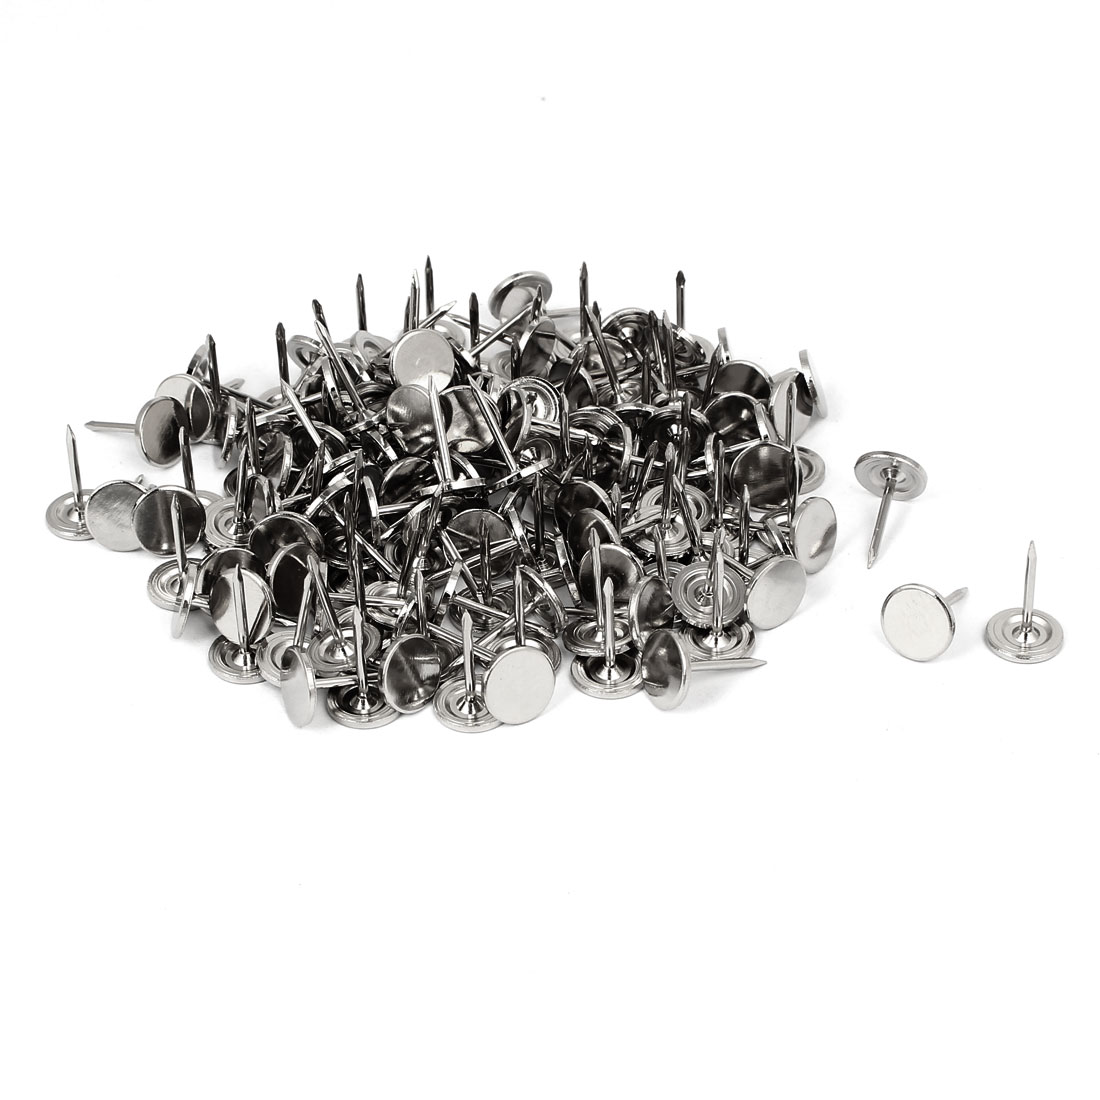 "7/16"" Dia 17mm Height Round Flat Head Upholstery Tack Nail Silver Tone 150pcs"